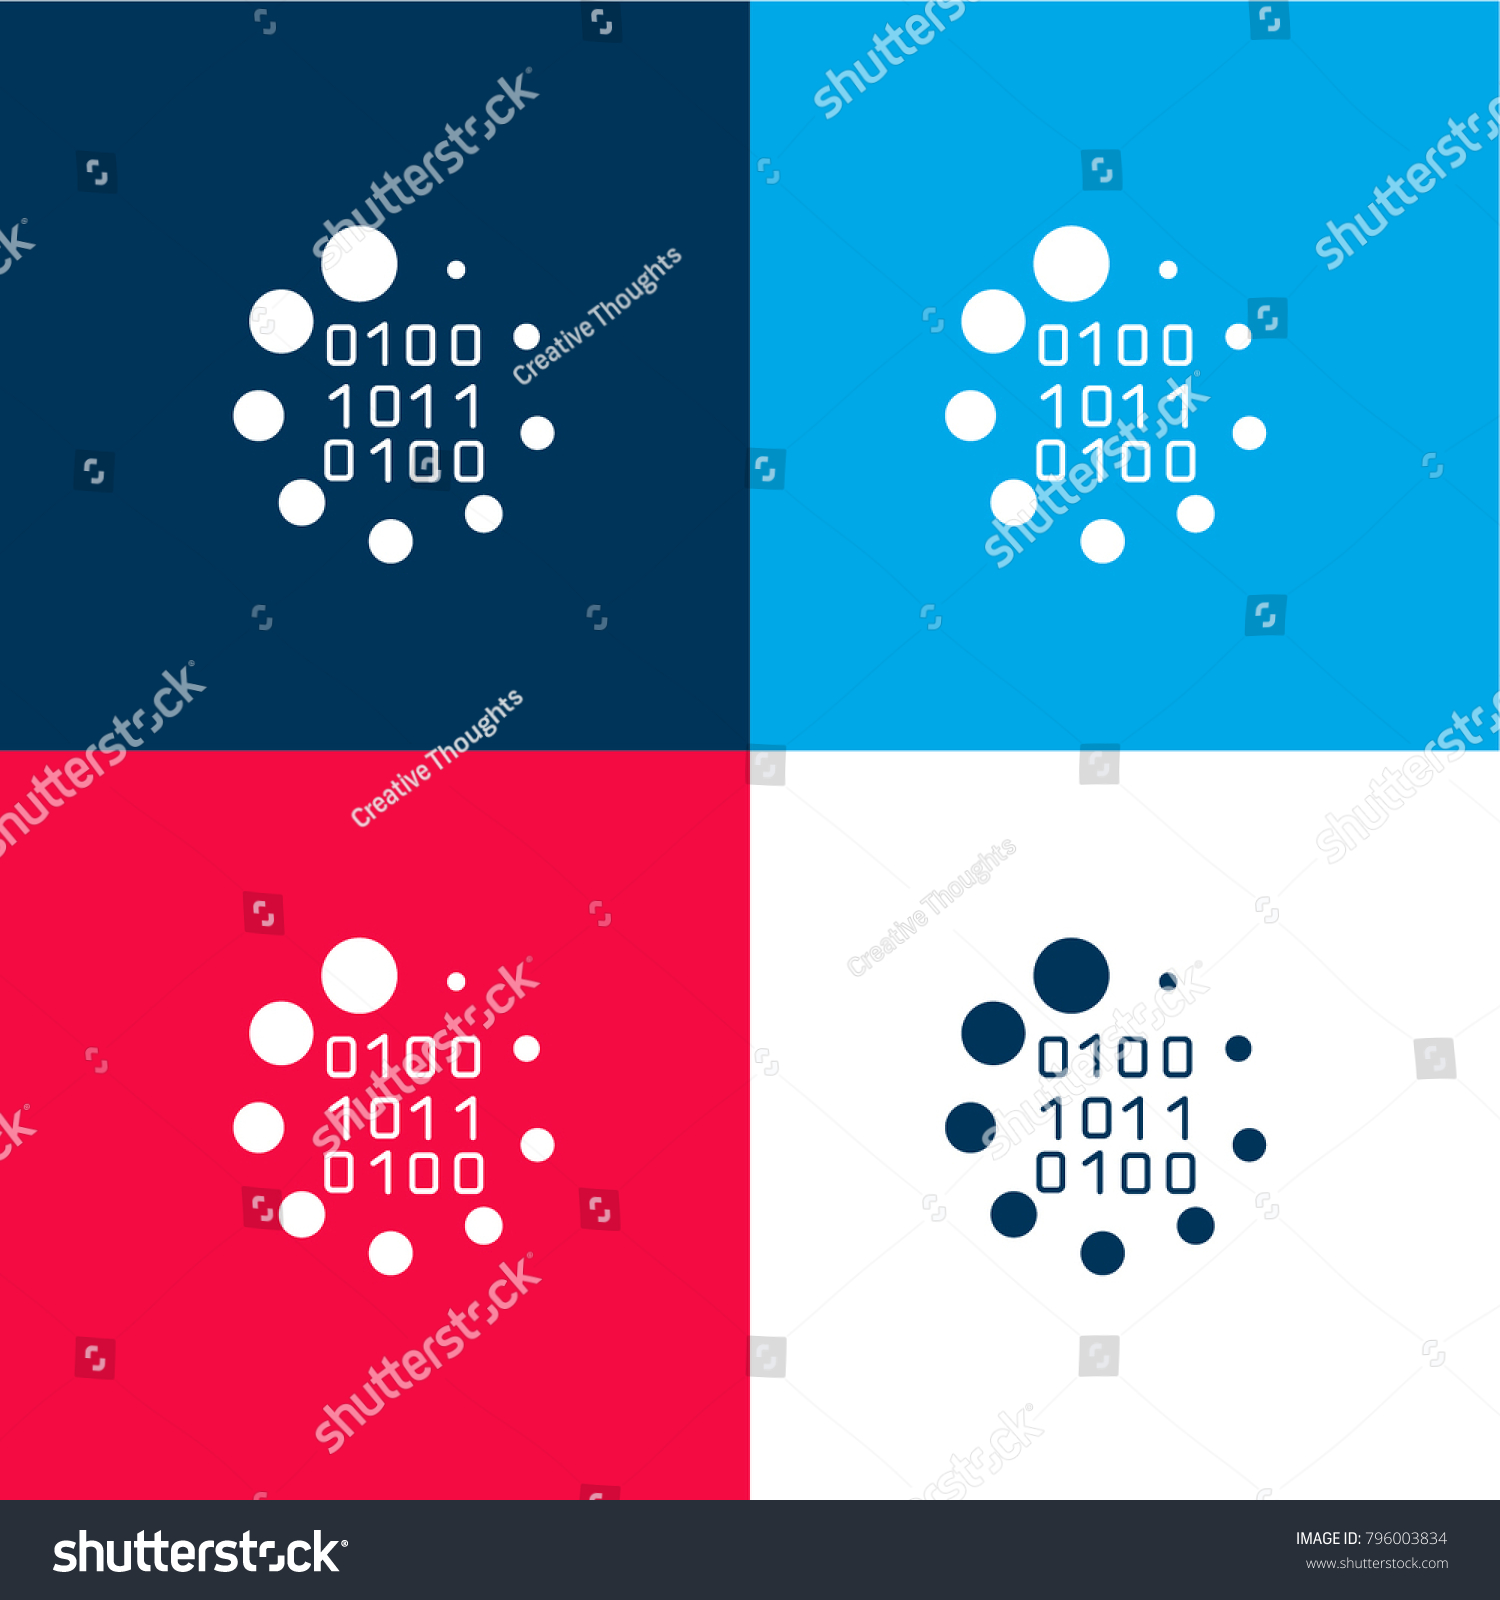 Binary code loading symbol four color stock vector 796003834 binary code loading symbol four color stock vector 796003834 shutterstock biocorpaavc Image collections